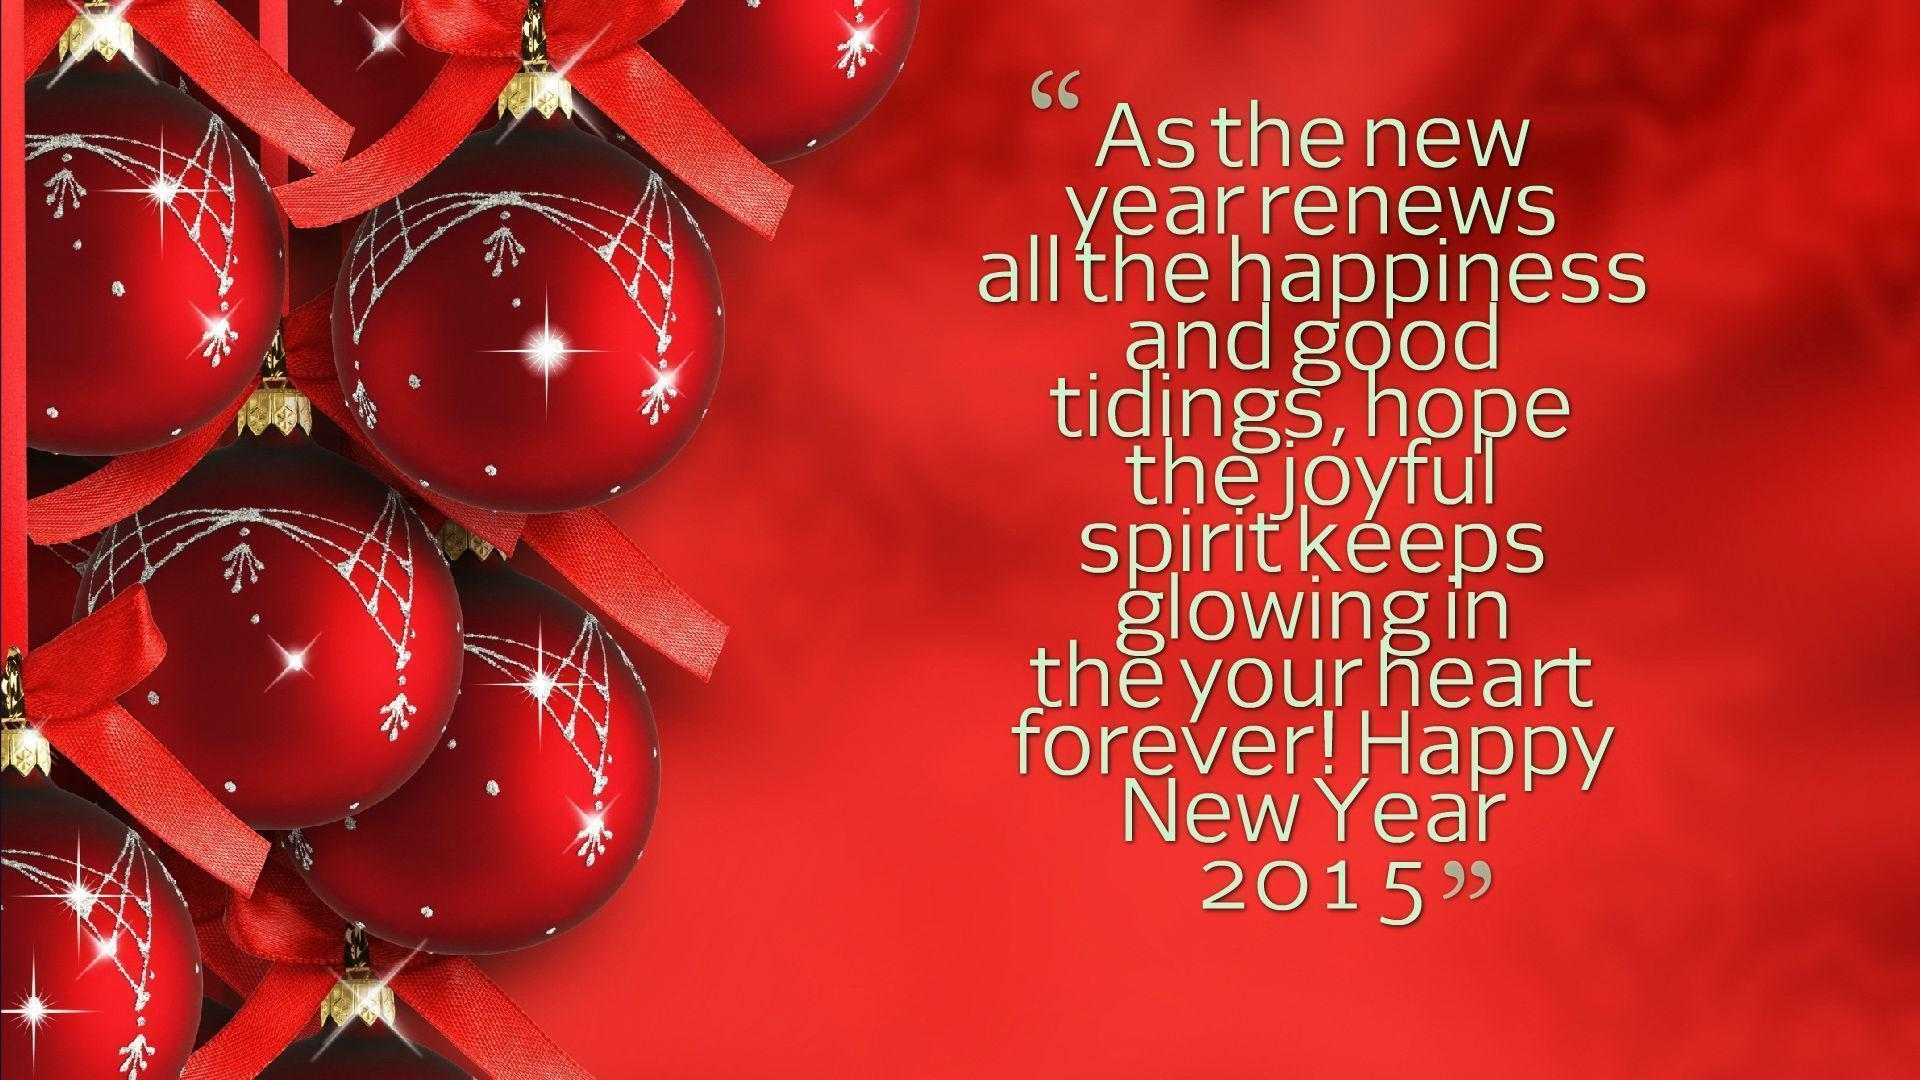 New Year 2015 Greetings Wallpapers Wallpaper Cave